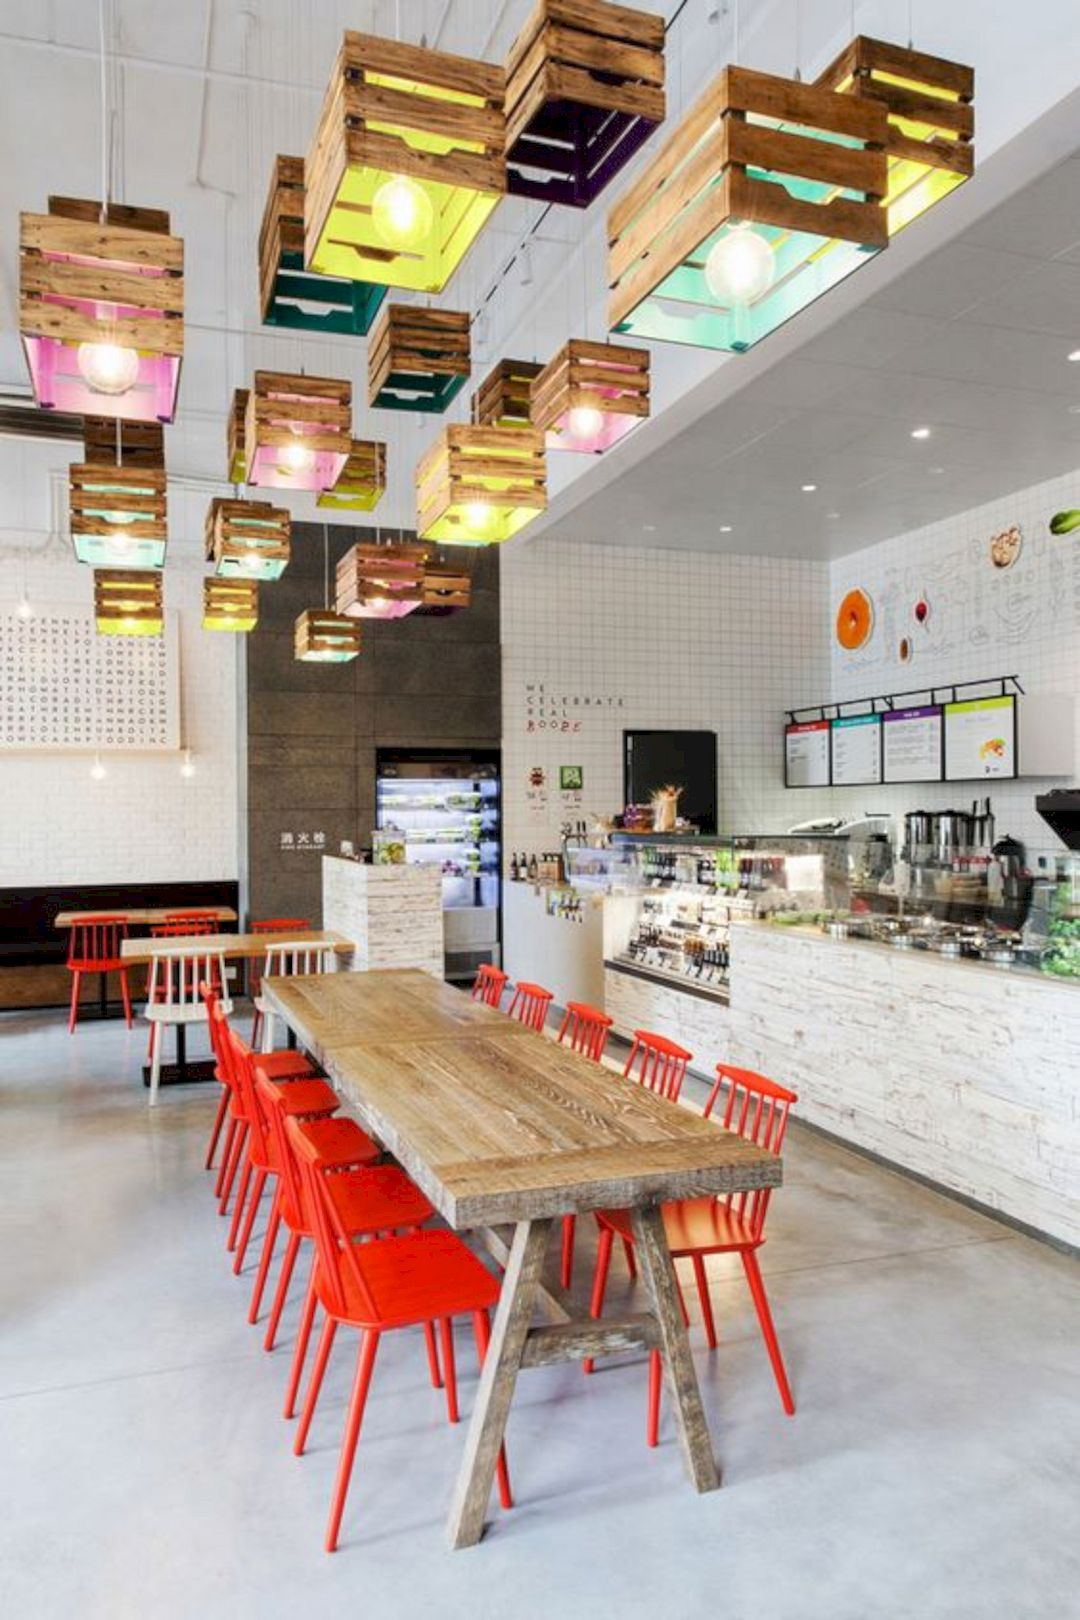 Delicieux 15 Great Interior Design Ideas For Small Restaurant  Https://www.futuristarchitecture.com/31161 Small Restaurant.html